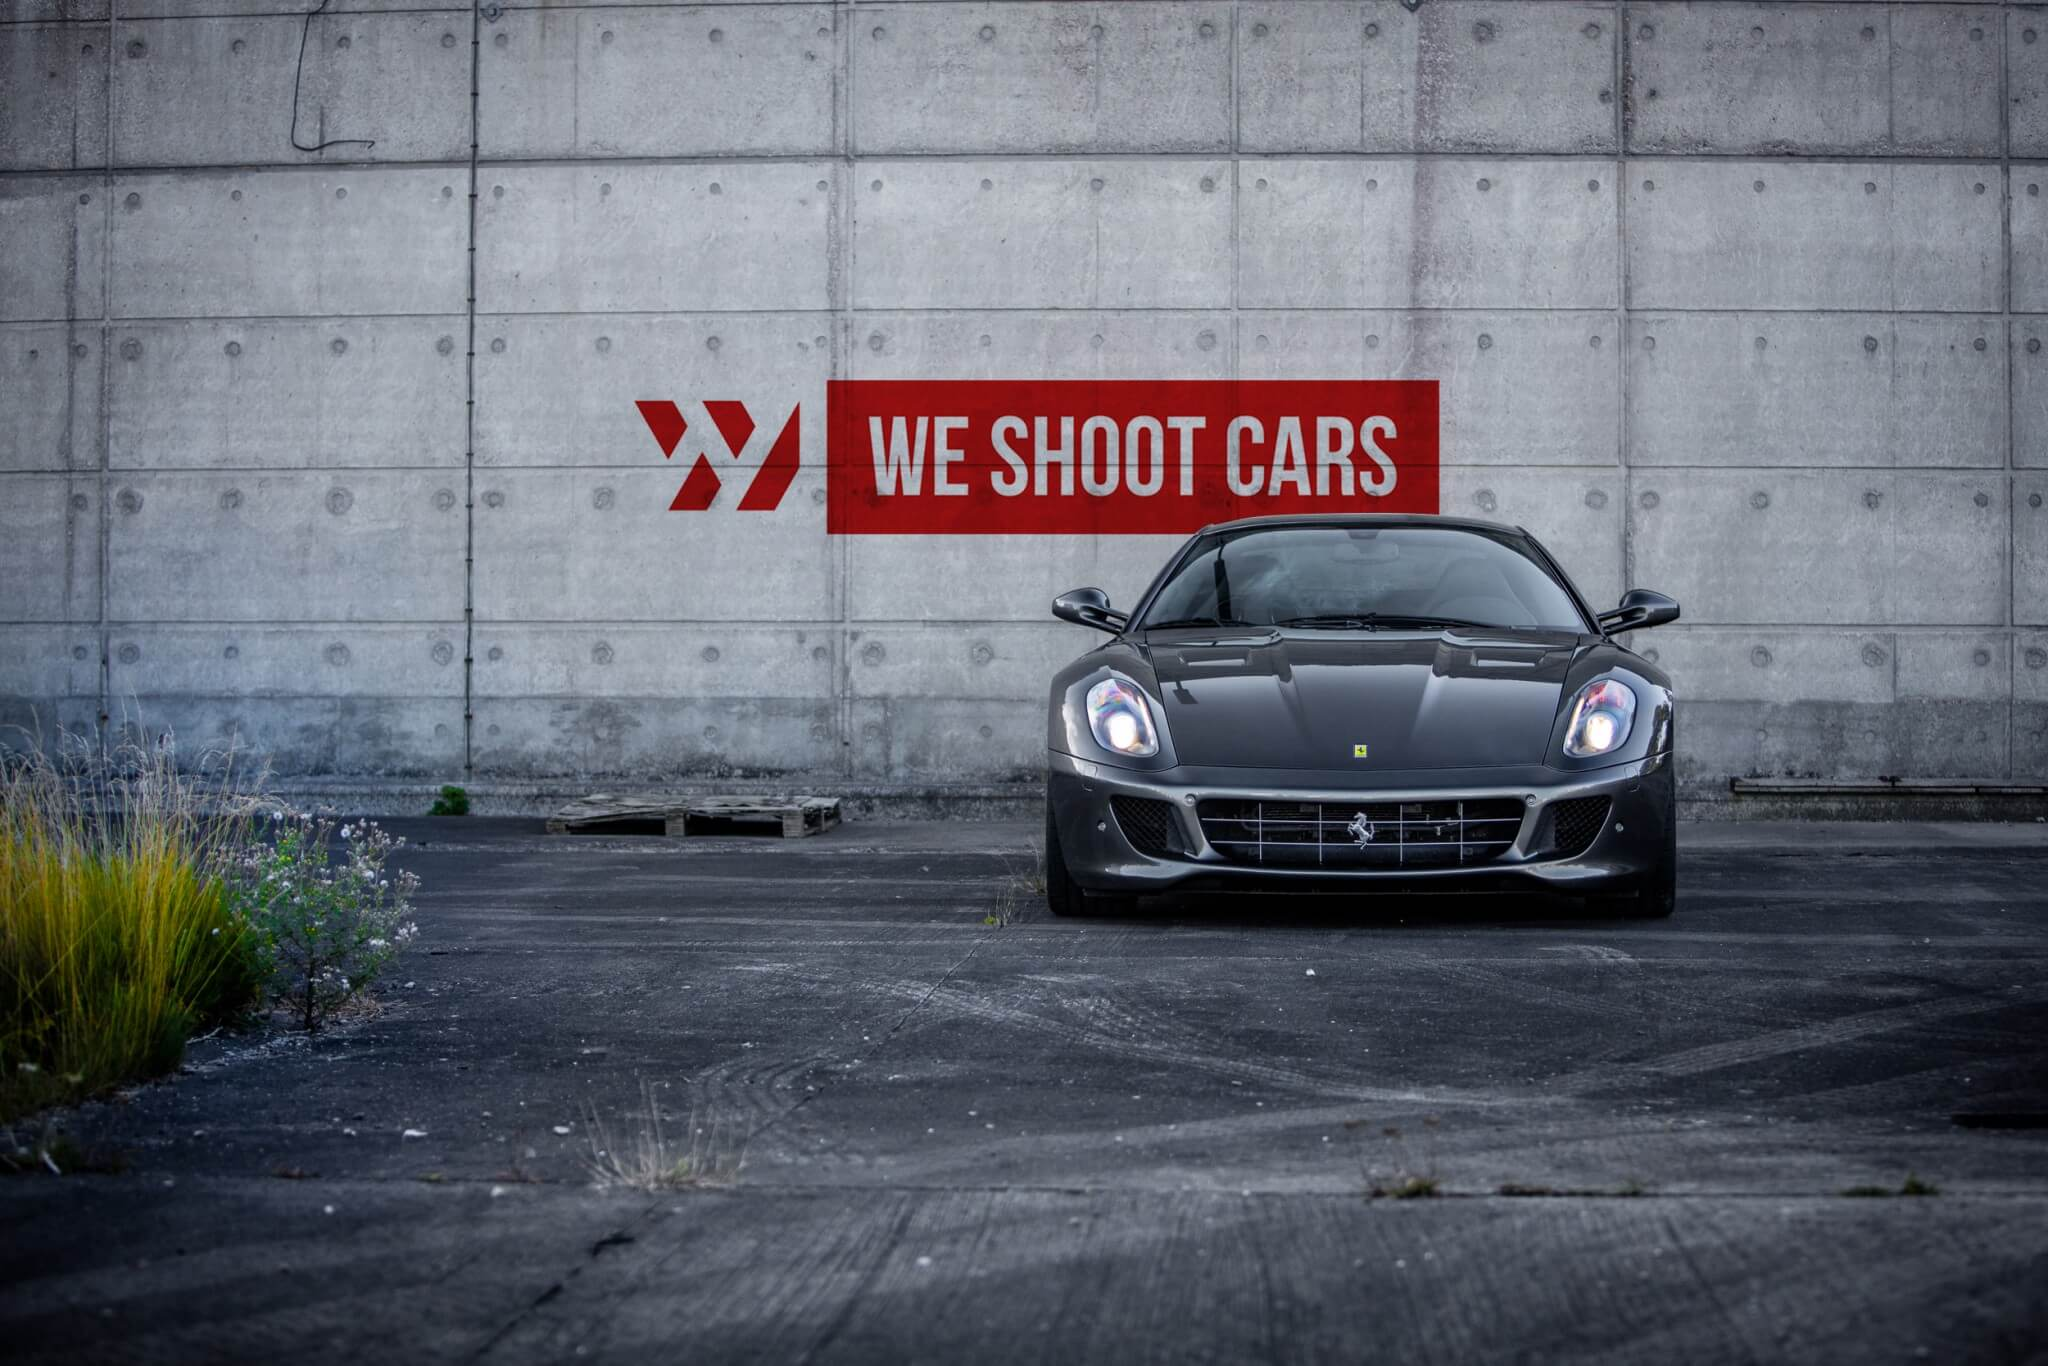 WSC logo on a grey Ferrari 599 GTB photo